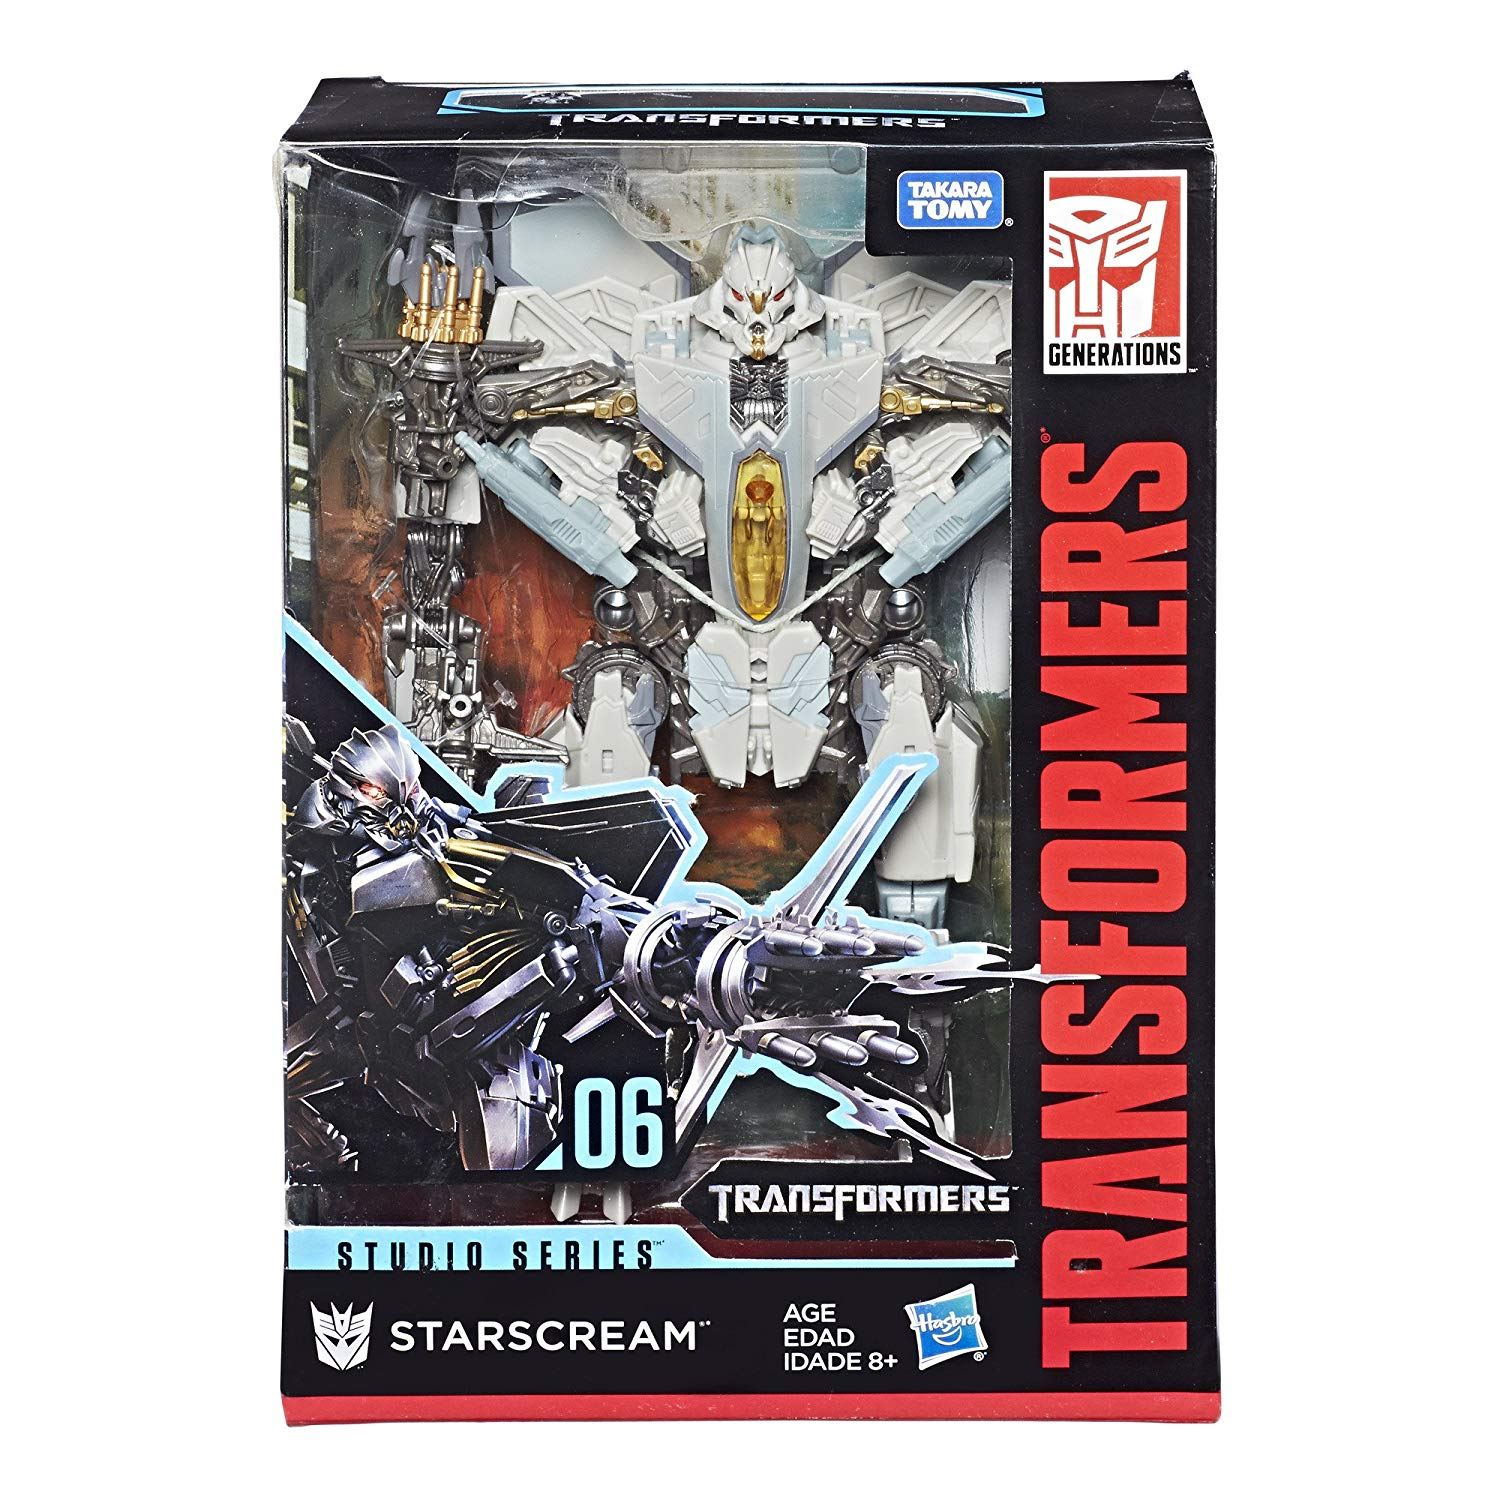 TRANSFORMERS GENERATION STUDIO SERIE VOYAGER E0702